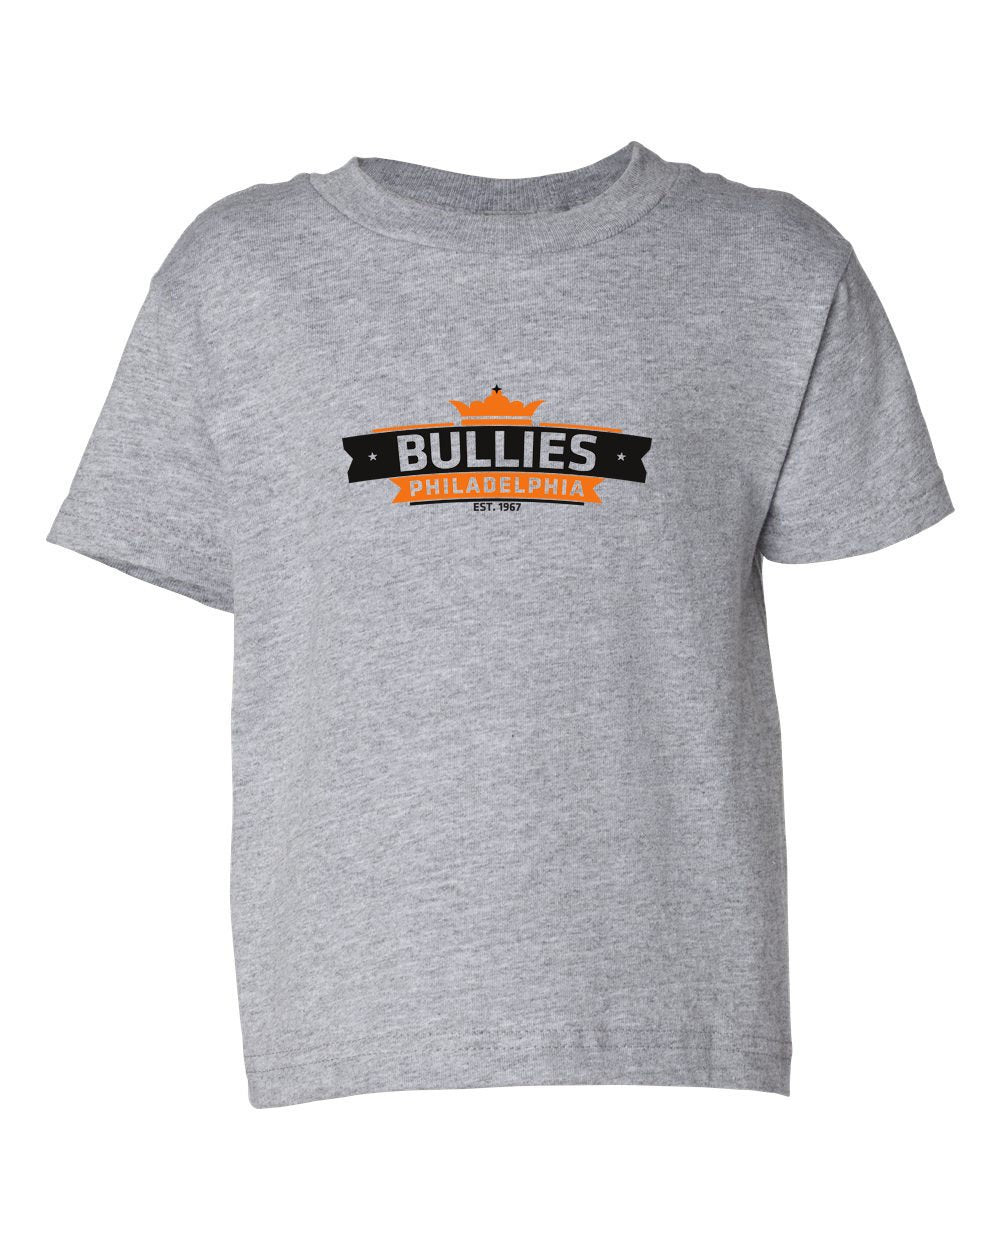 Bullies King TODDLER T-Shirt